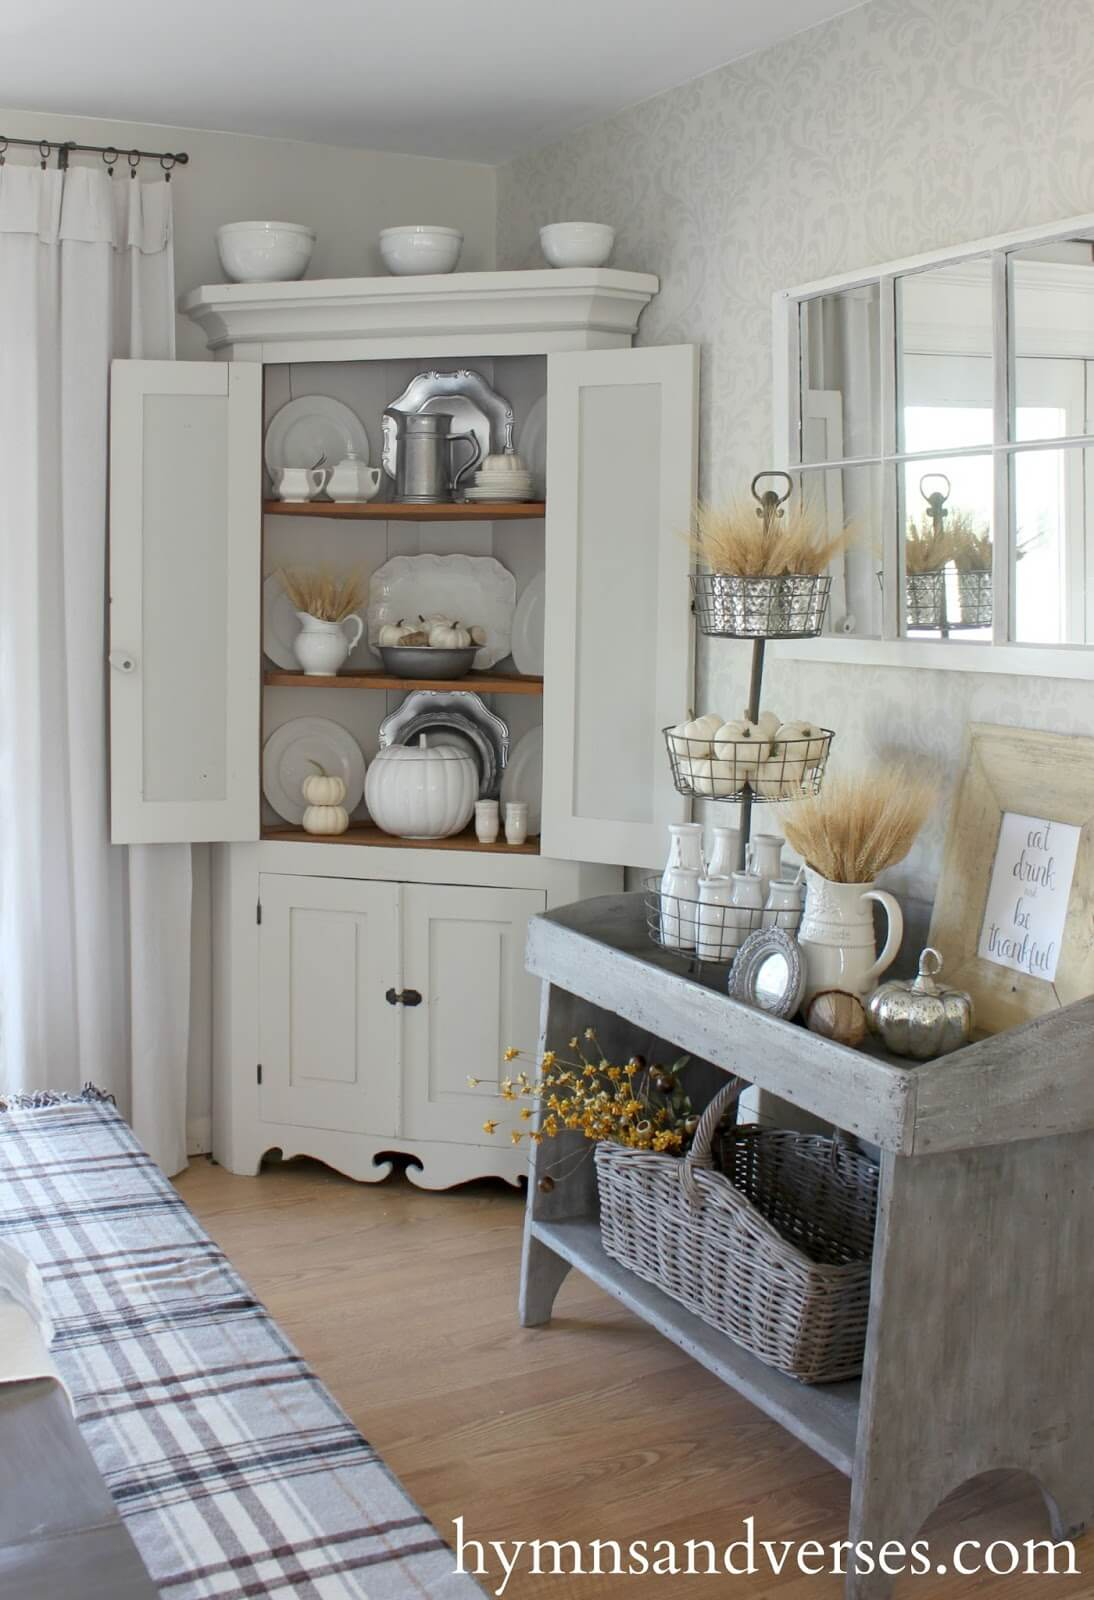 A Clean, Old Fashioned Look With Rustic Decor